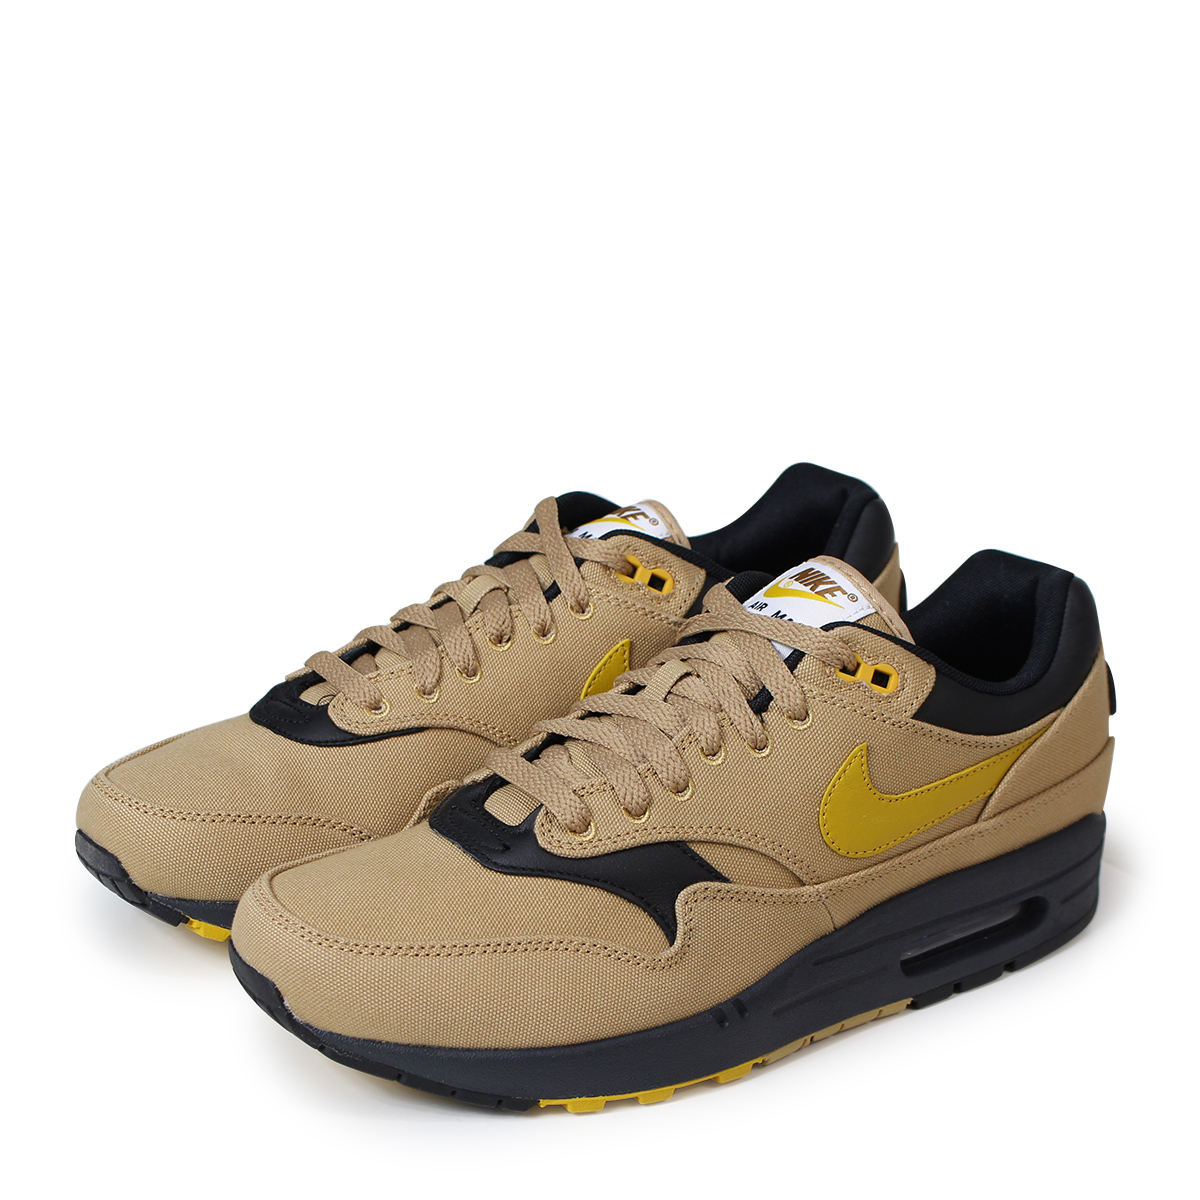 check out 2baa0 996ce ALLSPORTS  NIKE AIR MAX 1 PREMIUM Kie Ney AMAX 1 premium sneakers men  875,844-700 beige  load planned Shinnyu load in reservation product 5 18  containing  ...